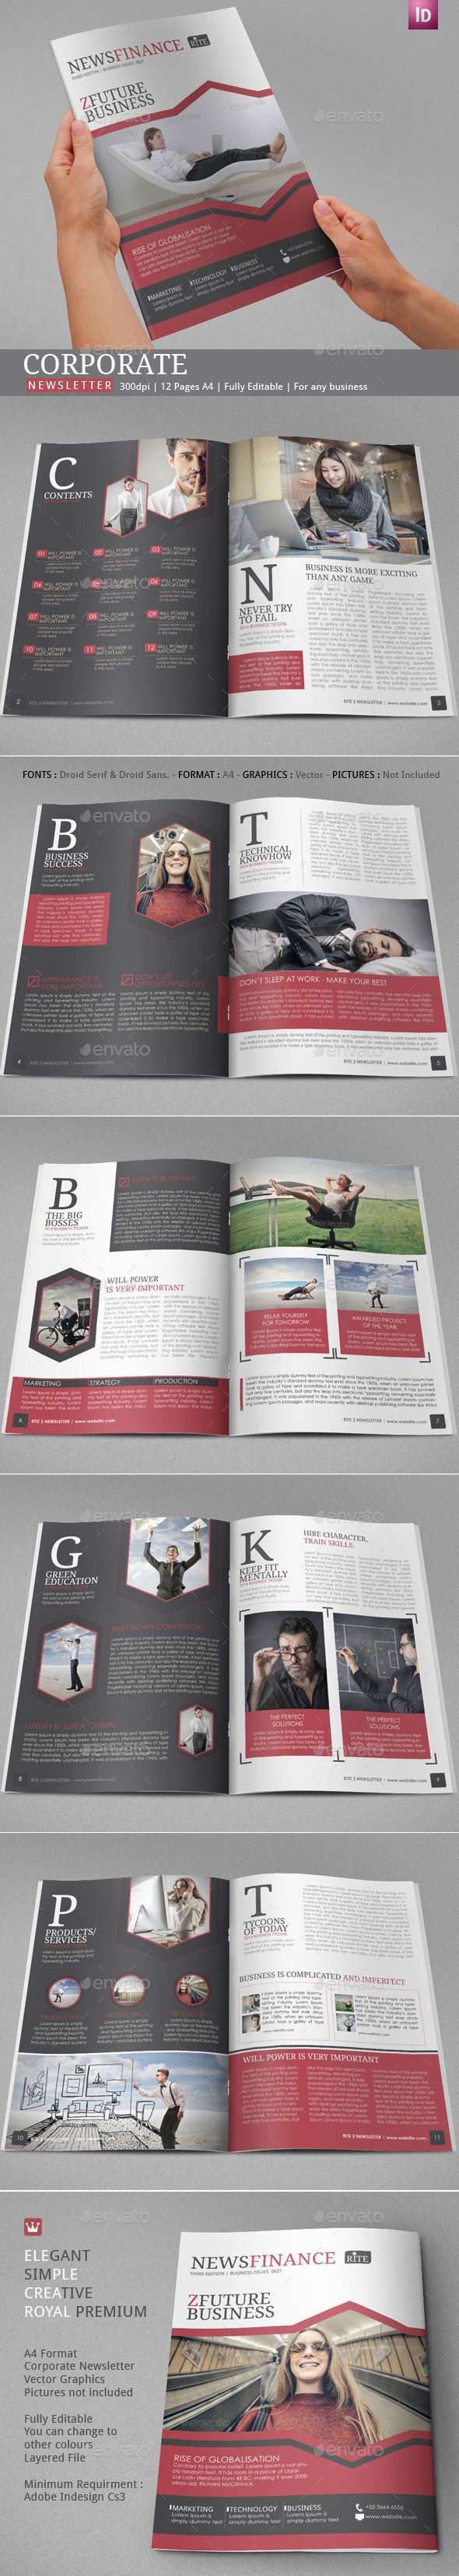 82 best Newsletter Ideas - 100 Indesign Templates images on ...